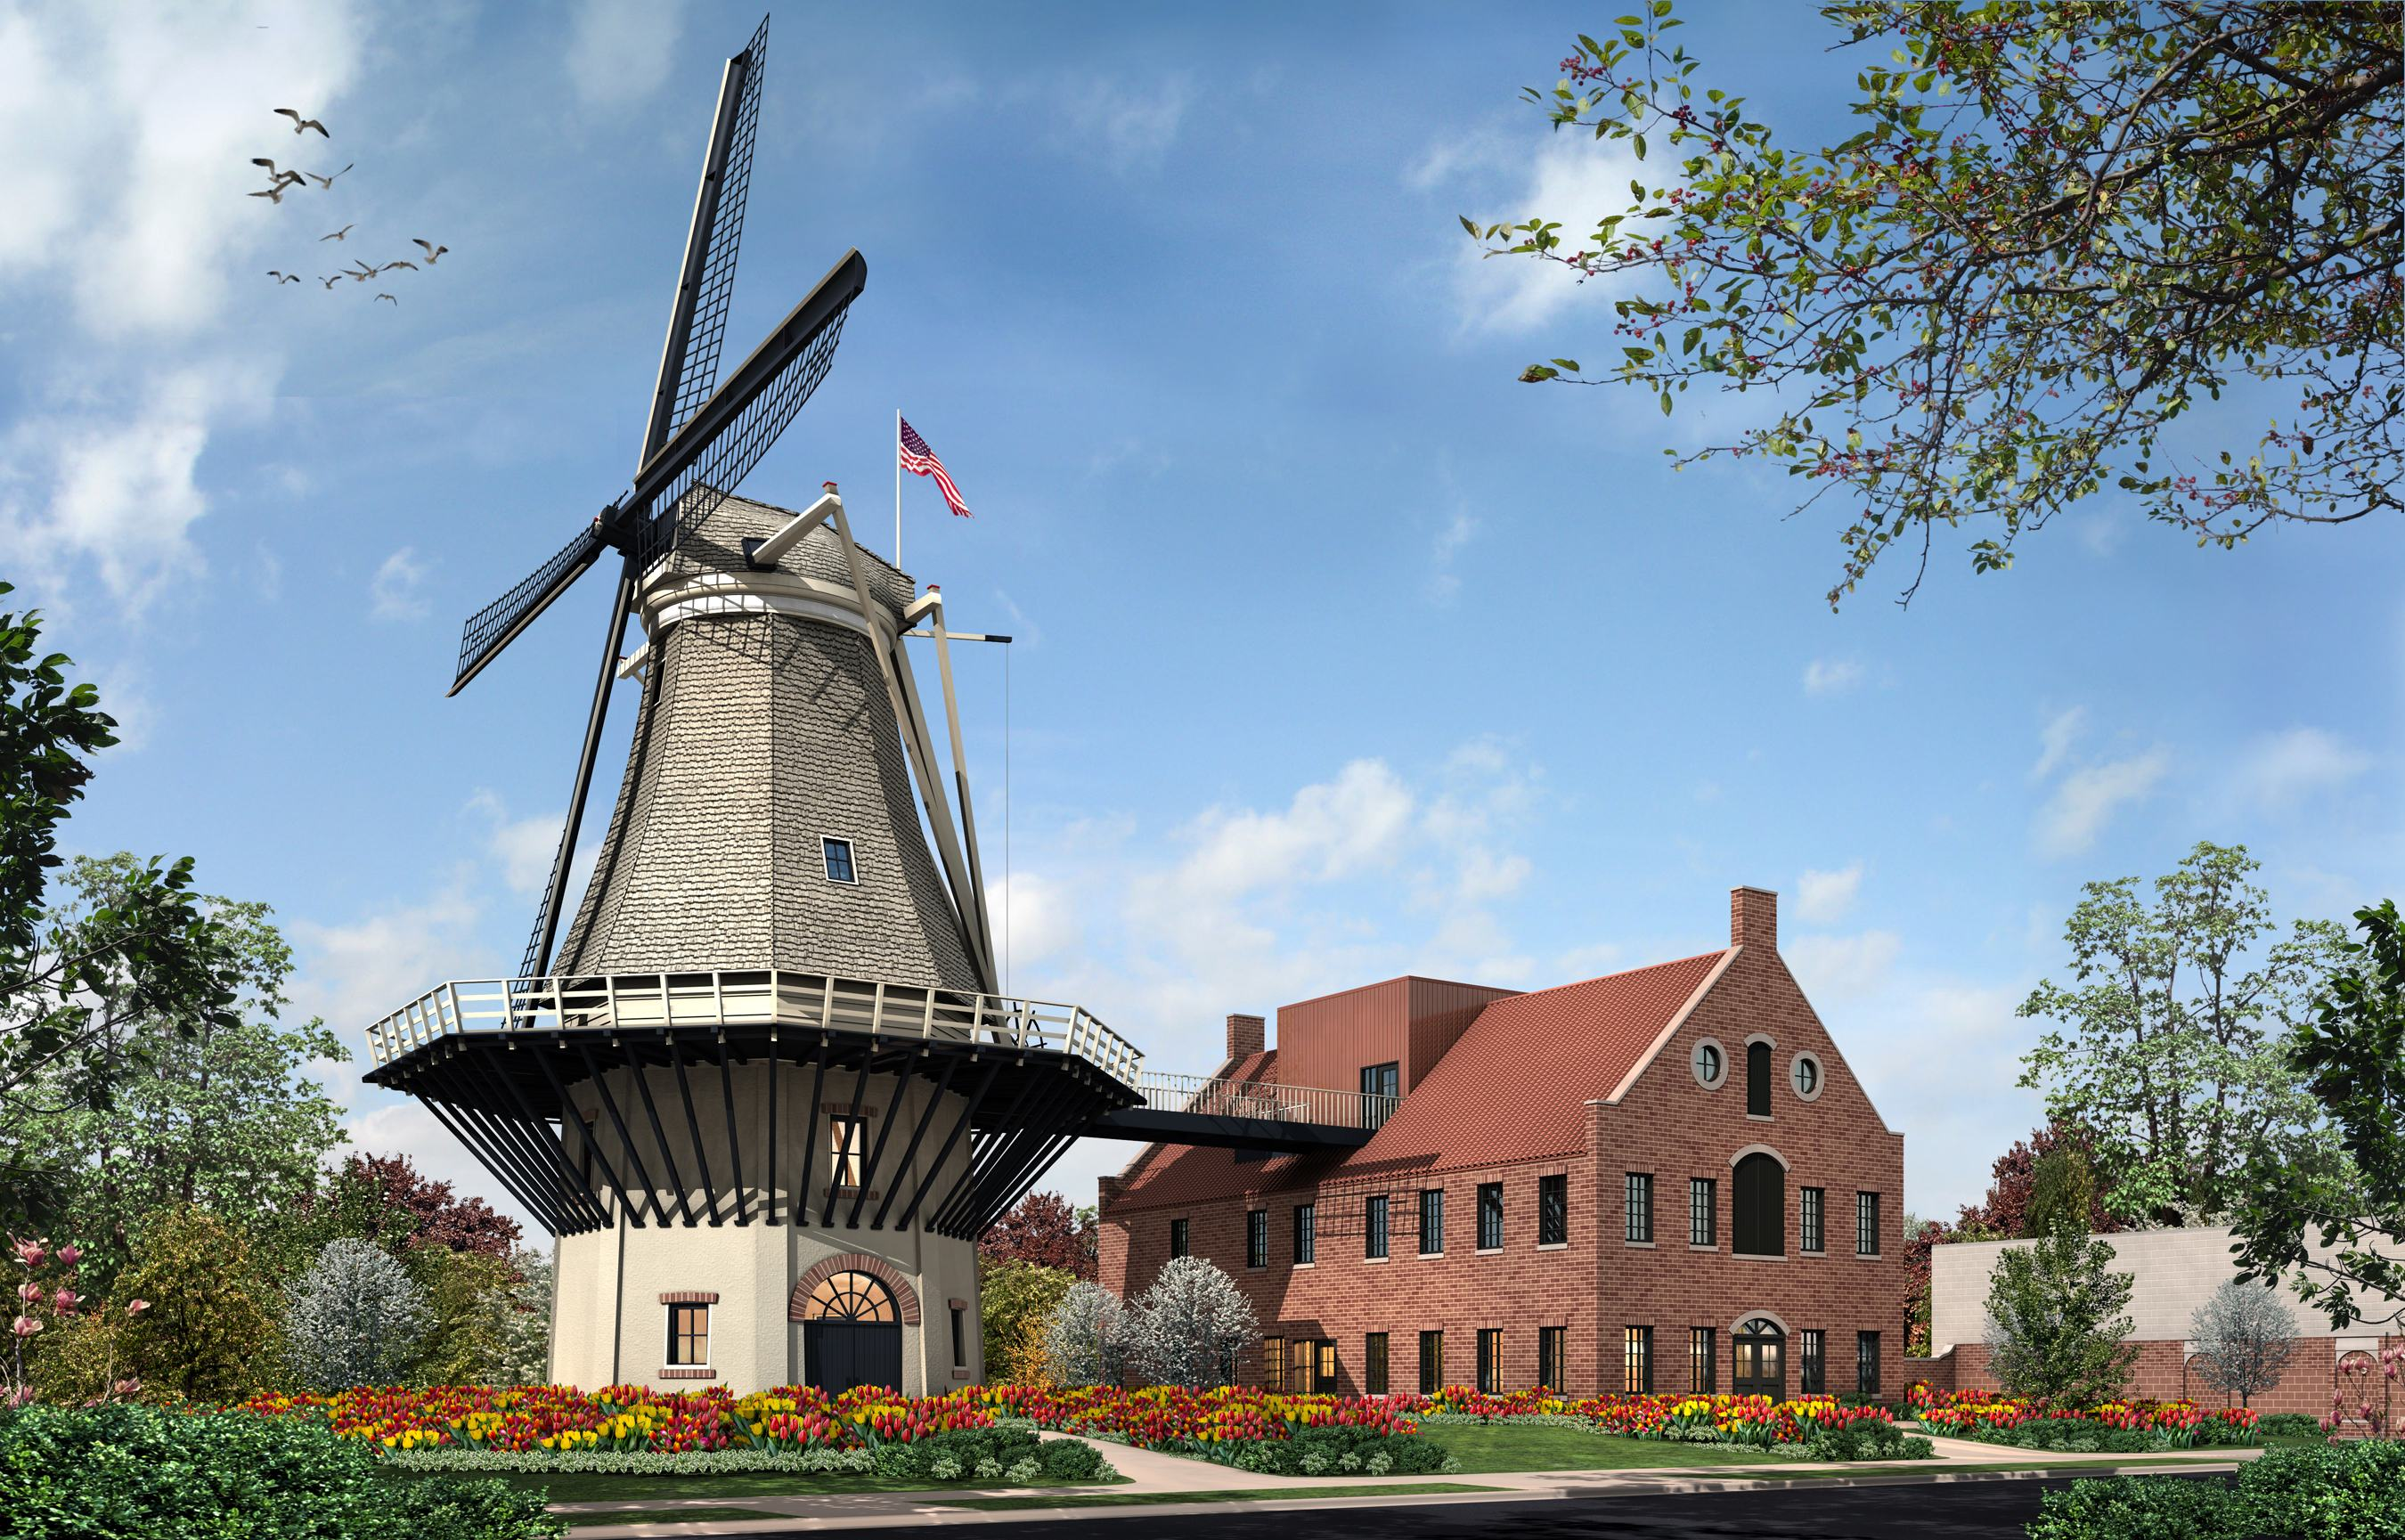 Rendering of Little Chute Windmill, photo courtesy Little Chute Windmill, Inc.